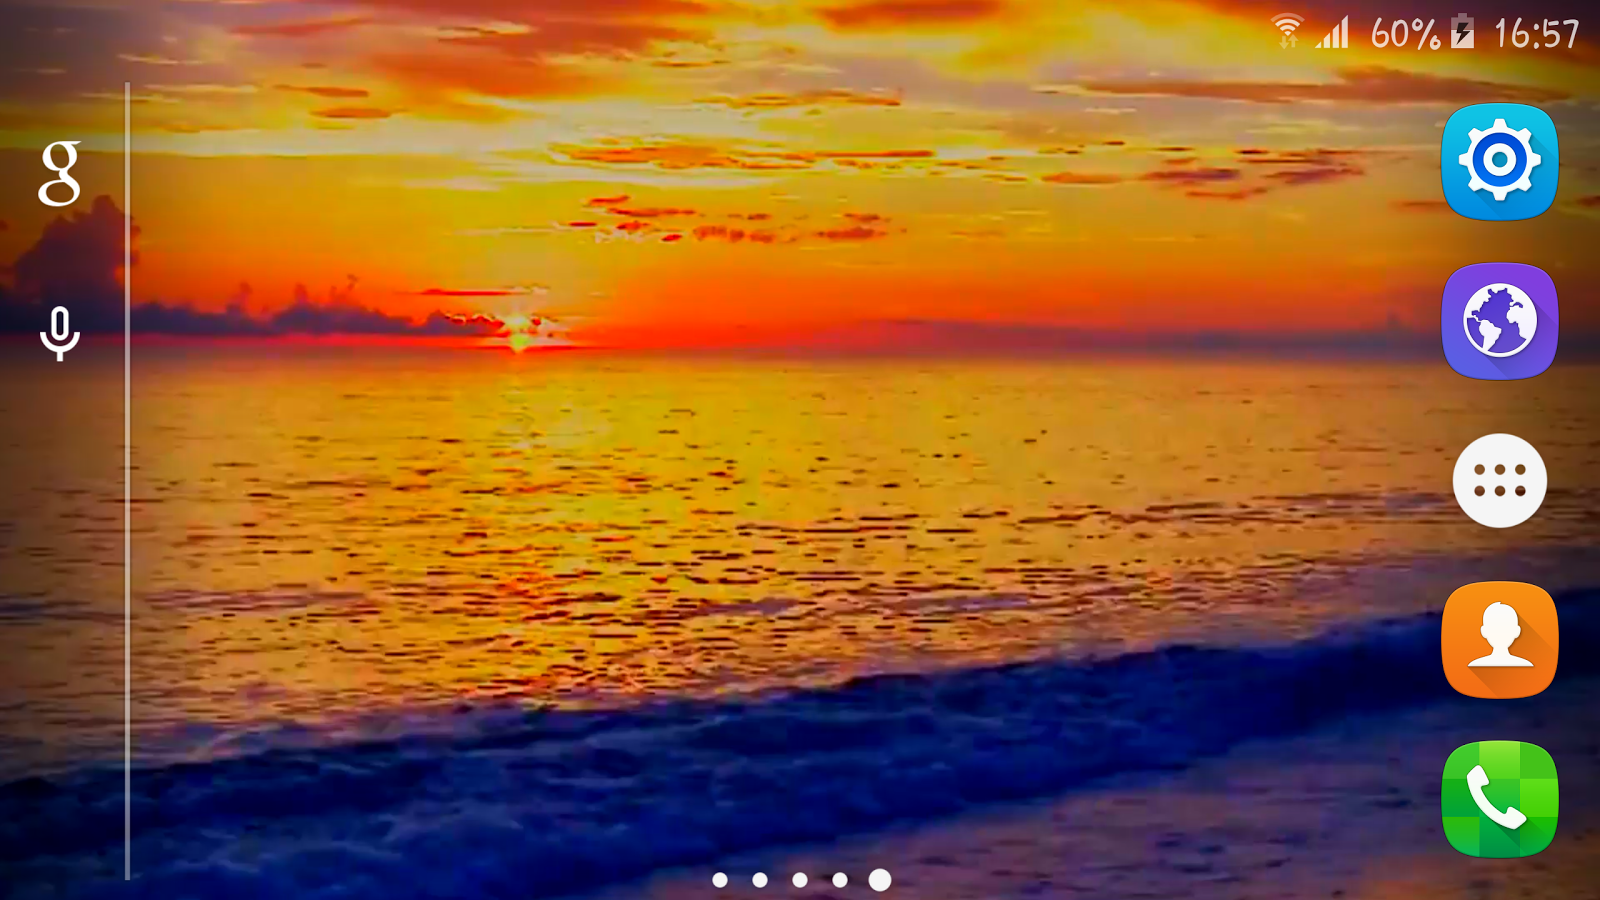 Sunset Beach Live Wallpaper Screenshot